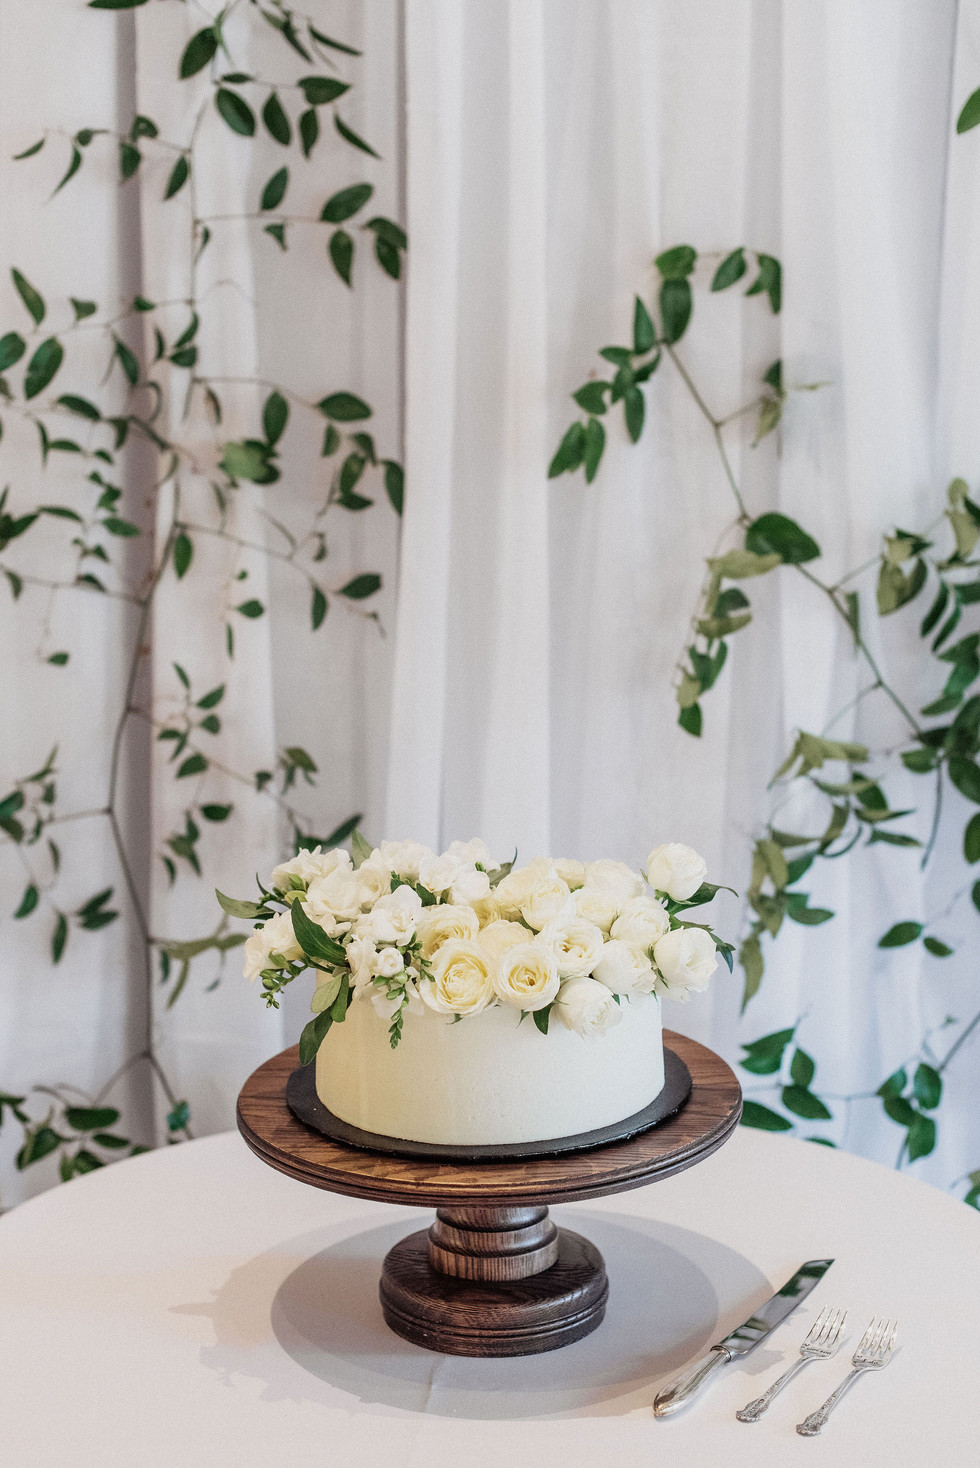 Trailing vines with miniature garden roses and fragrant freesia on wedding cake. Photo: Eden Strader